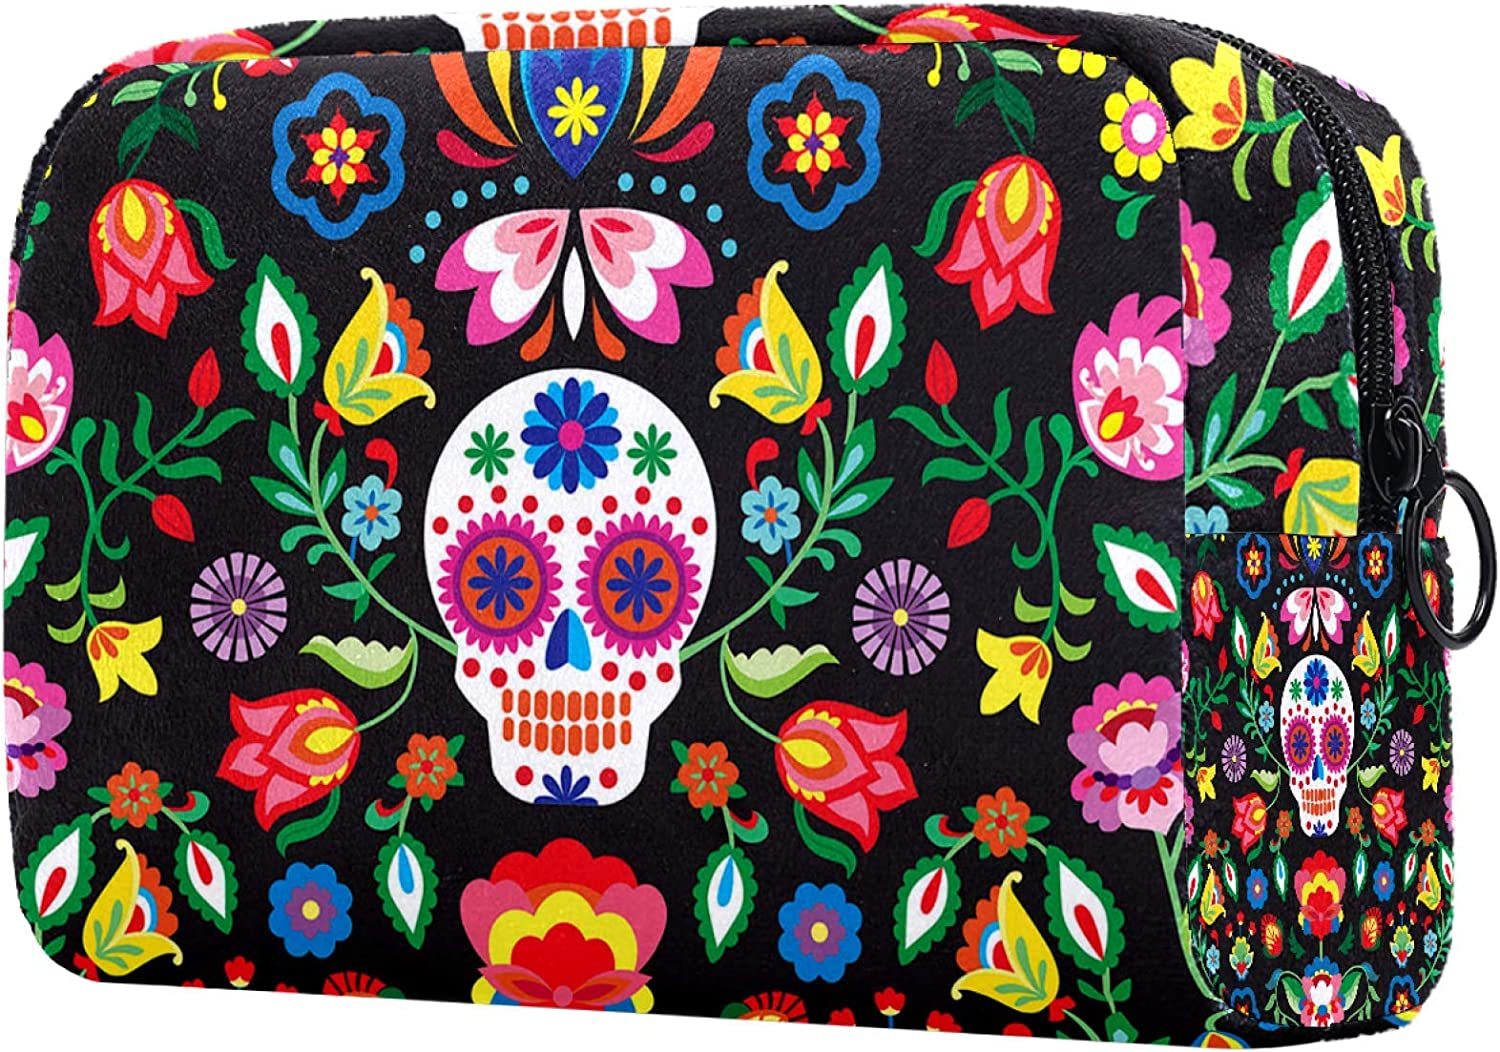 Mother's Day Gift Cosmetic Bag for Women Toi Chicago Mall Makeup Travel Manufacturer direct delivery Bags